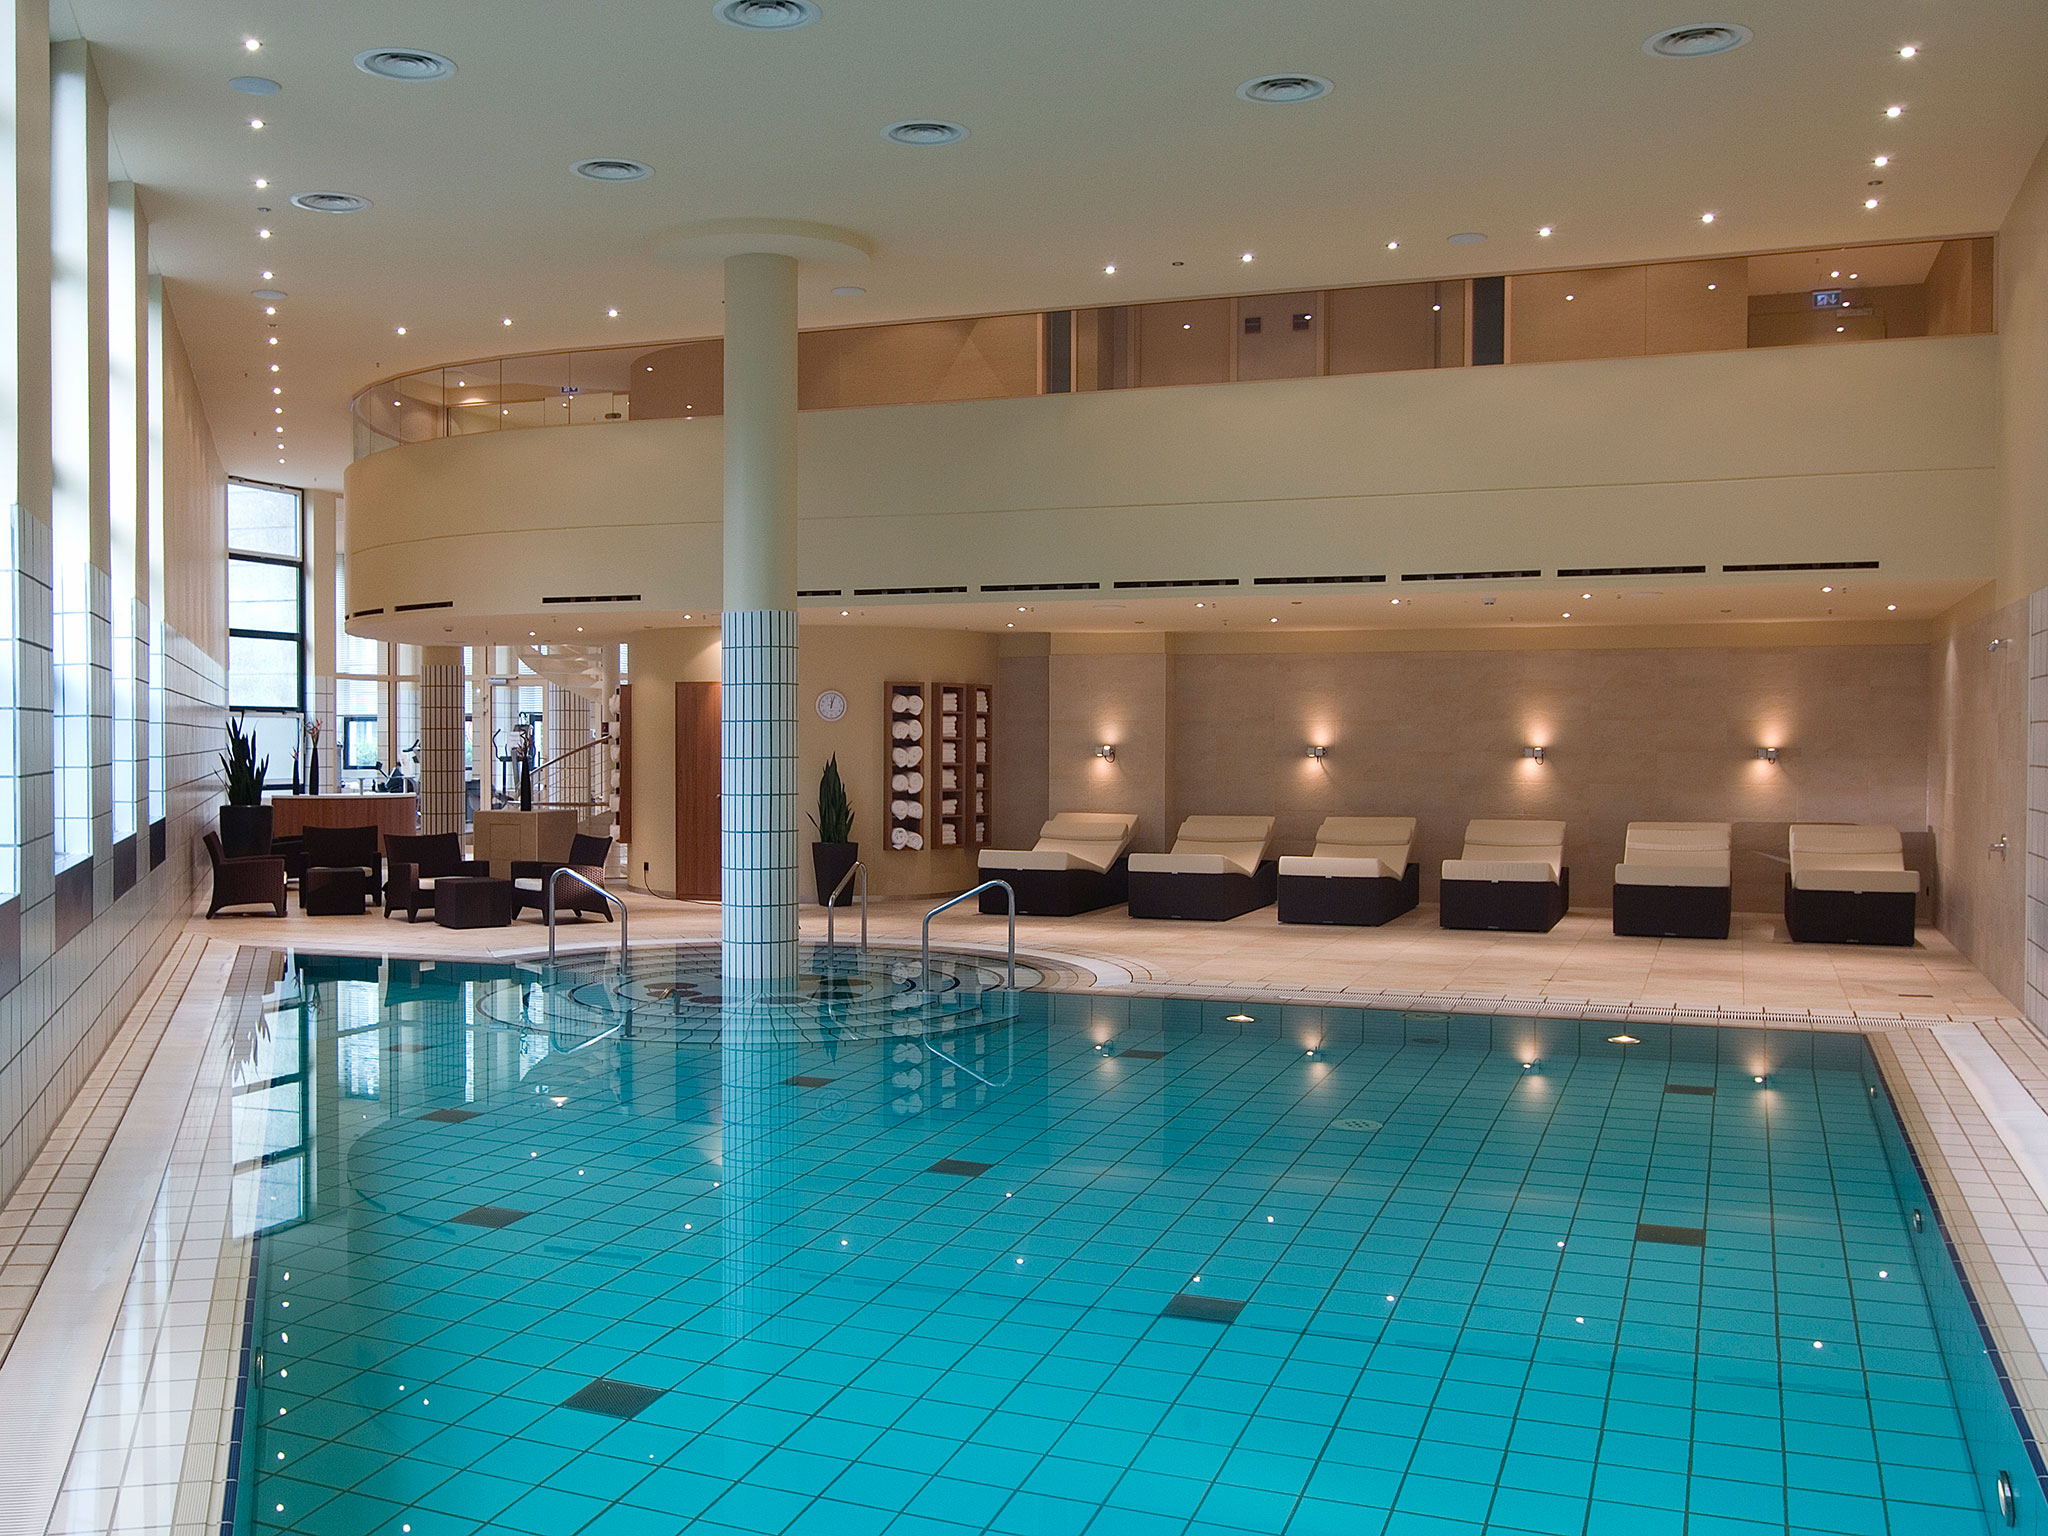 Swimming Pool at Sheraton Berlin Grand Hotel Esplanade